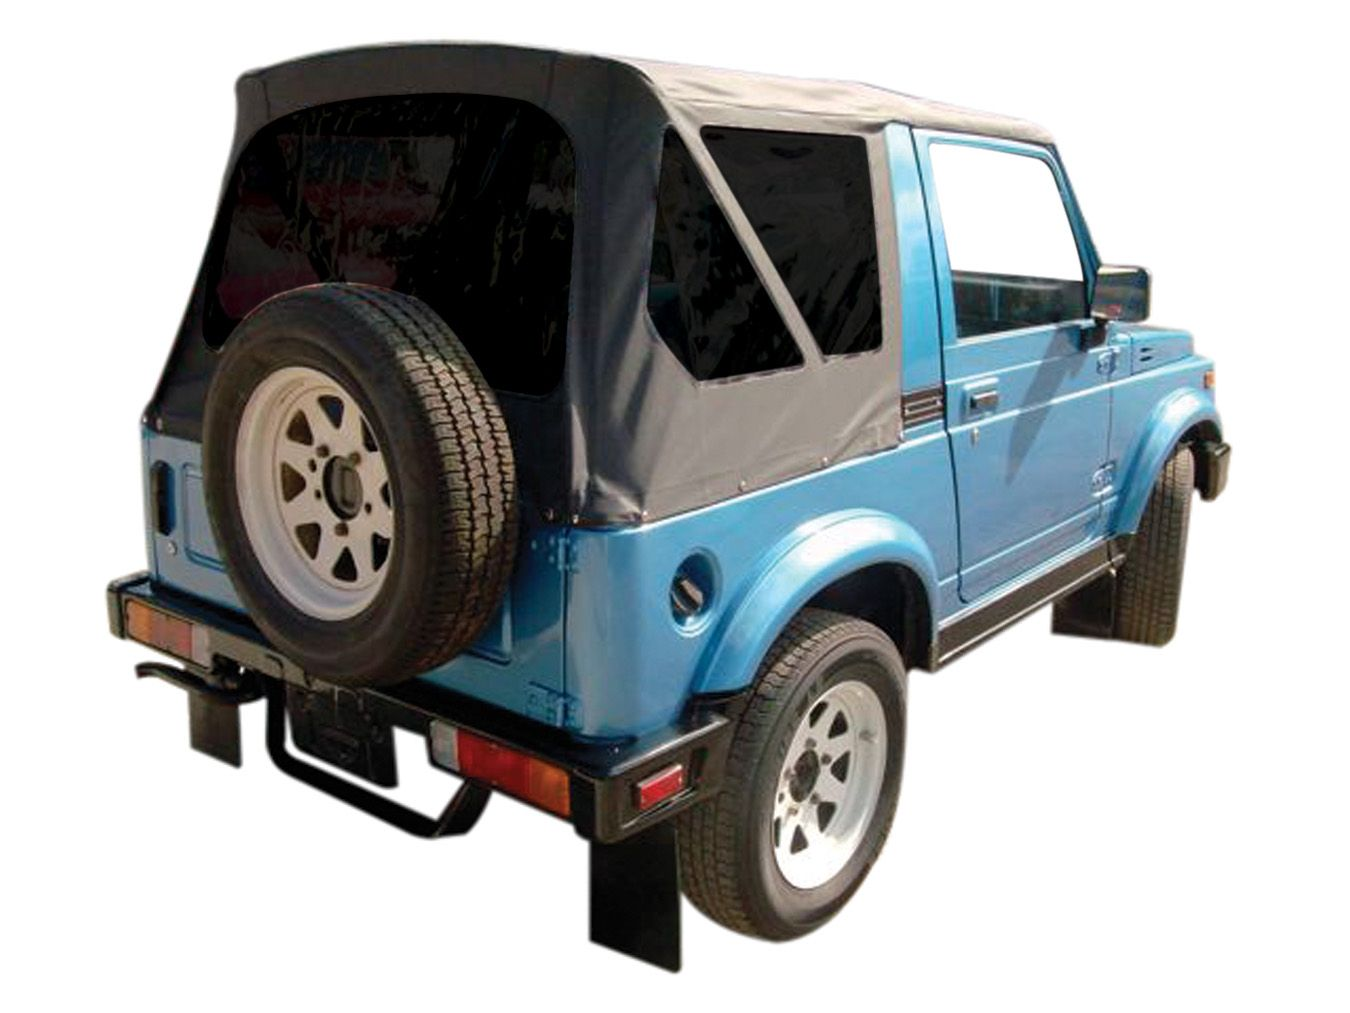 Suzuki samurai with a rampage products soft top available in black with clear windows